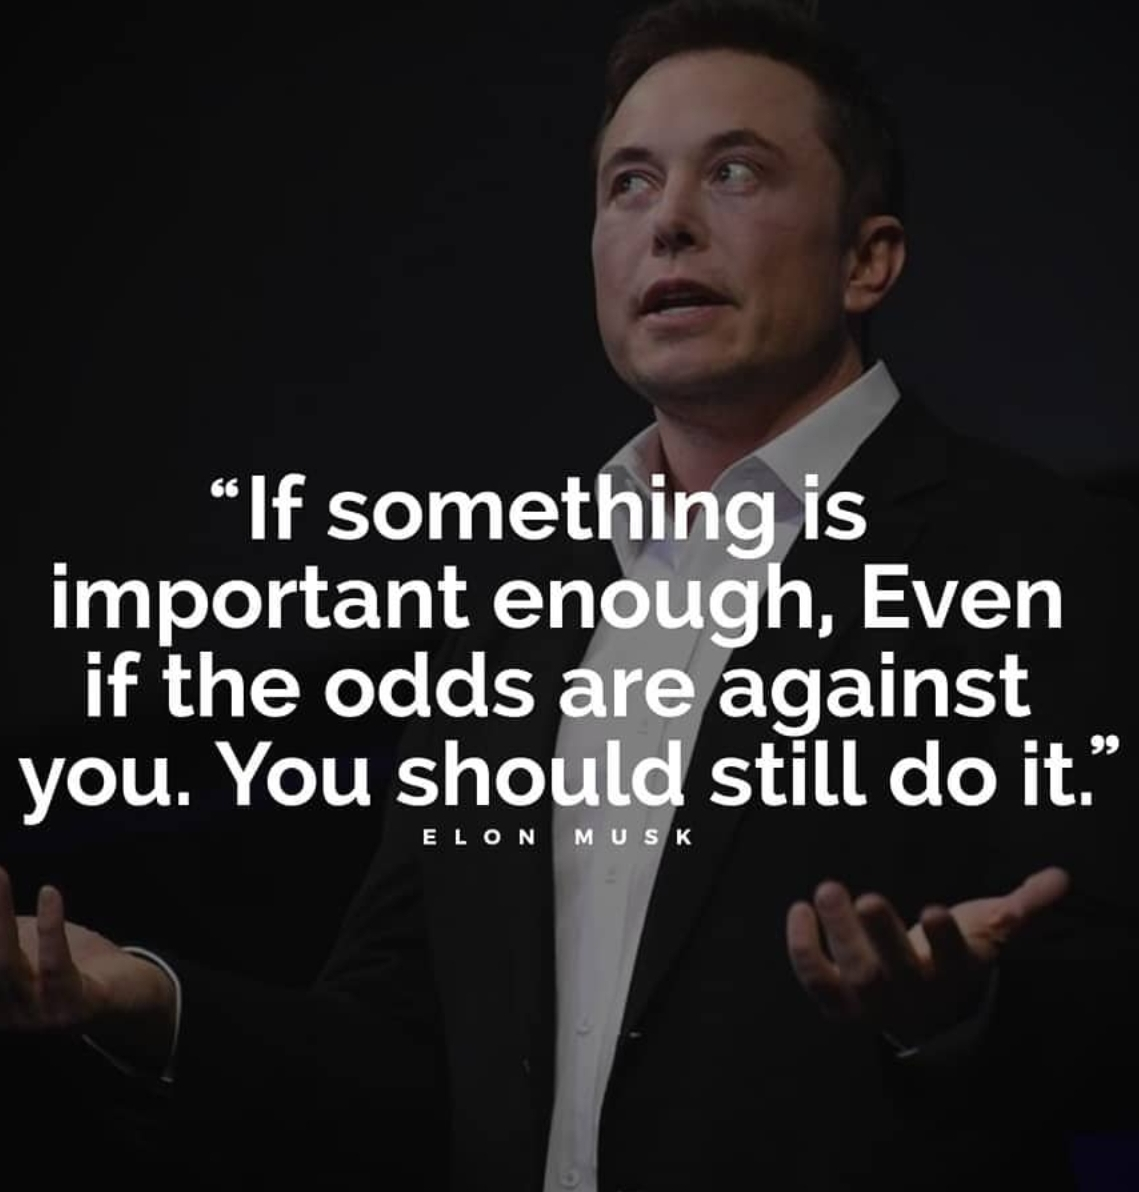 [Image] Inspiring words from Elon